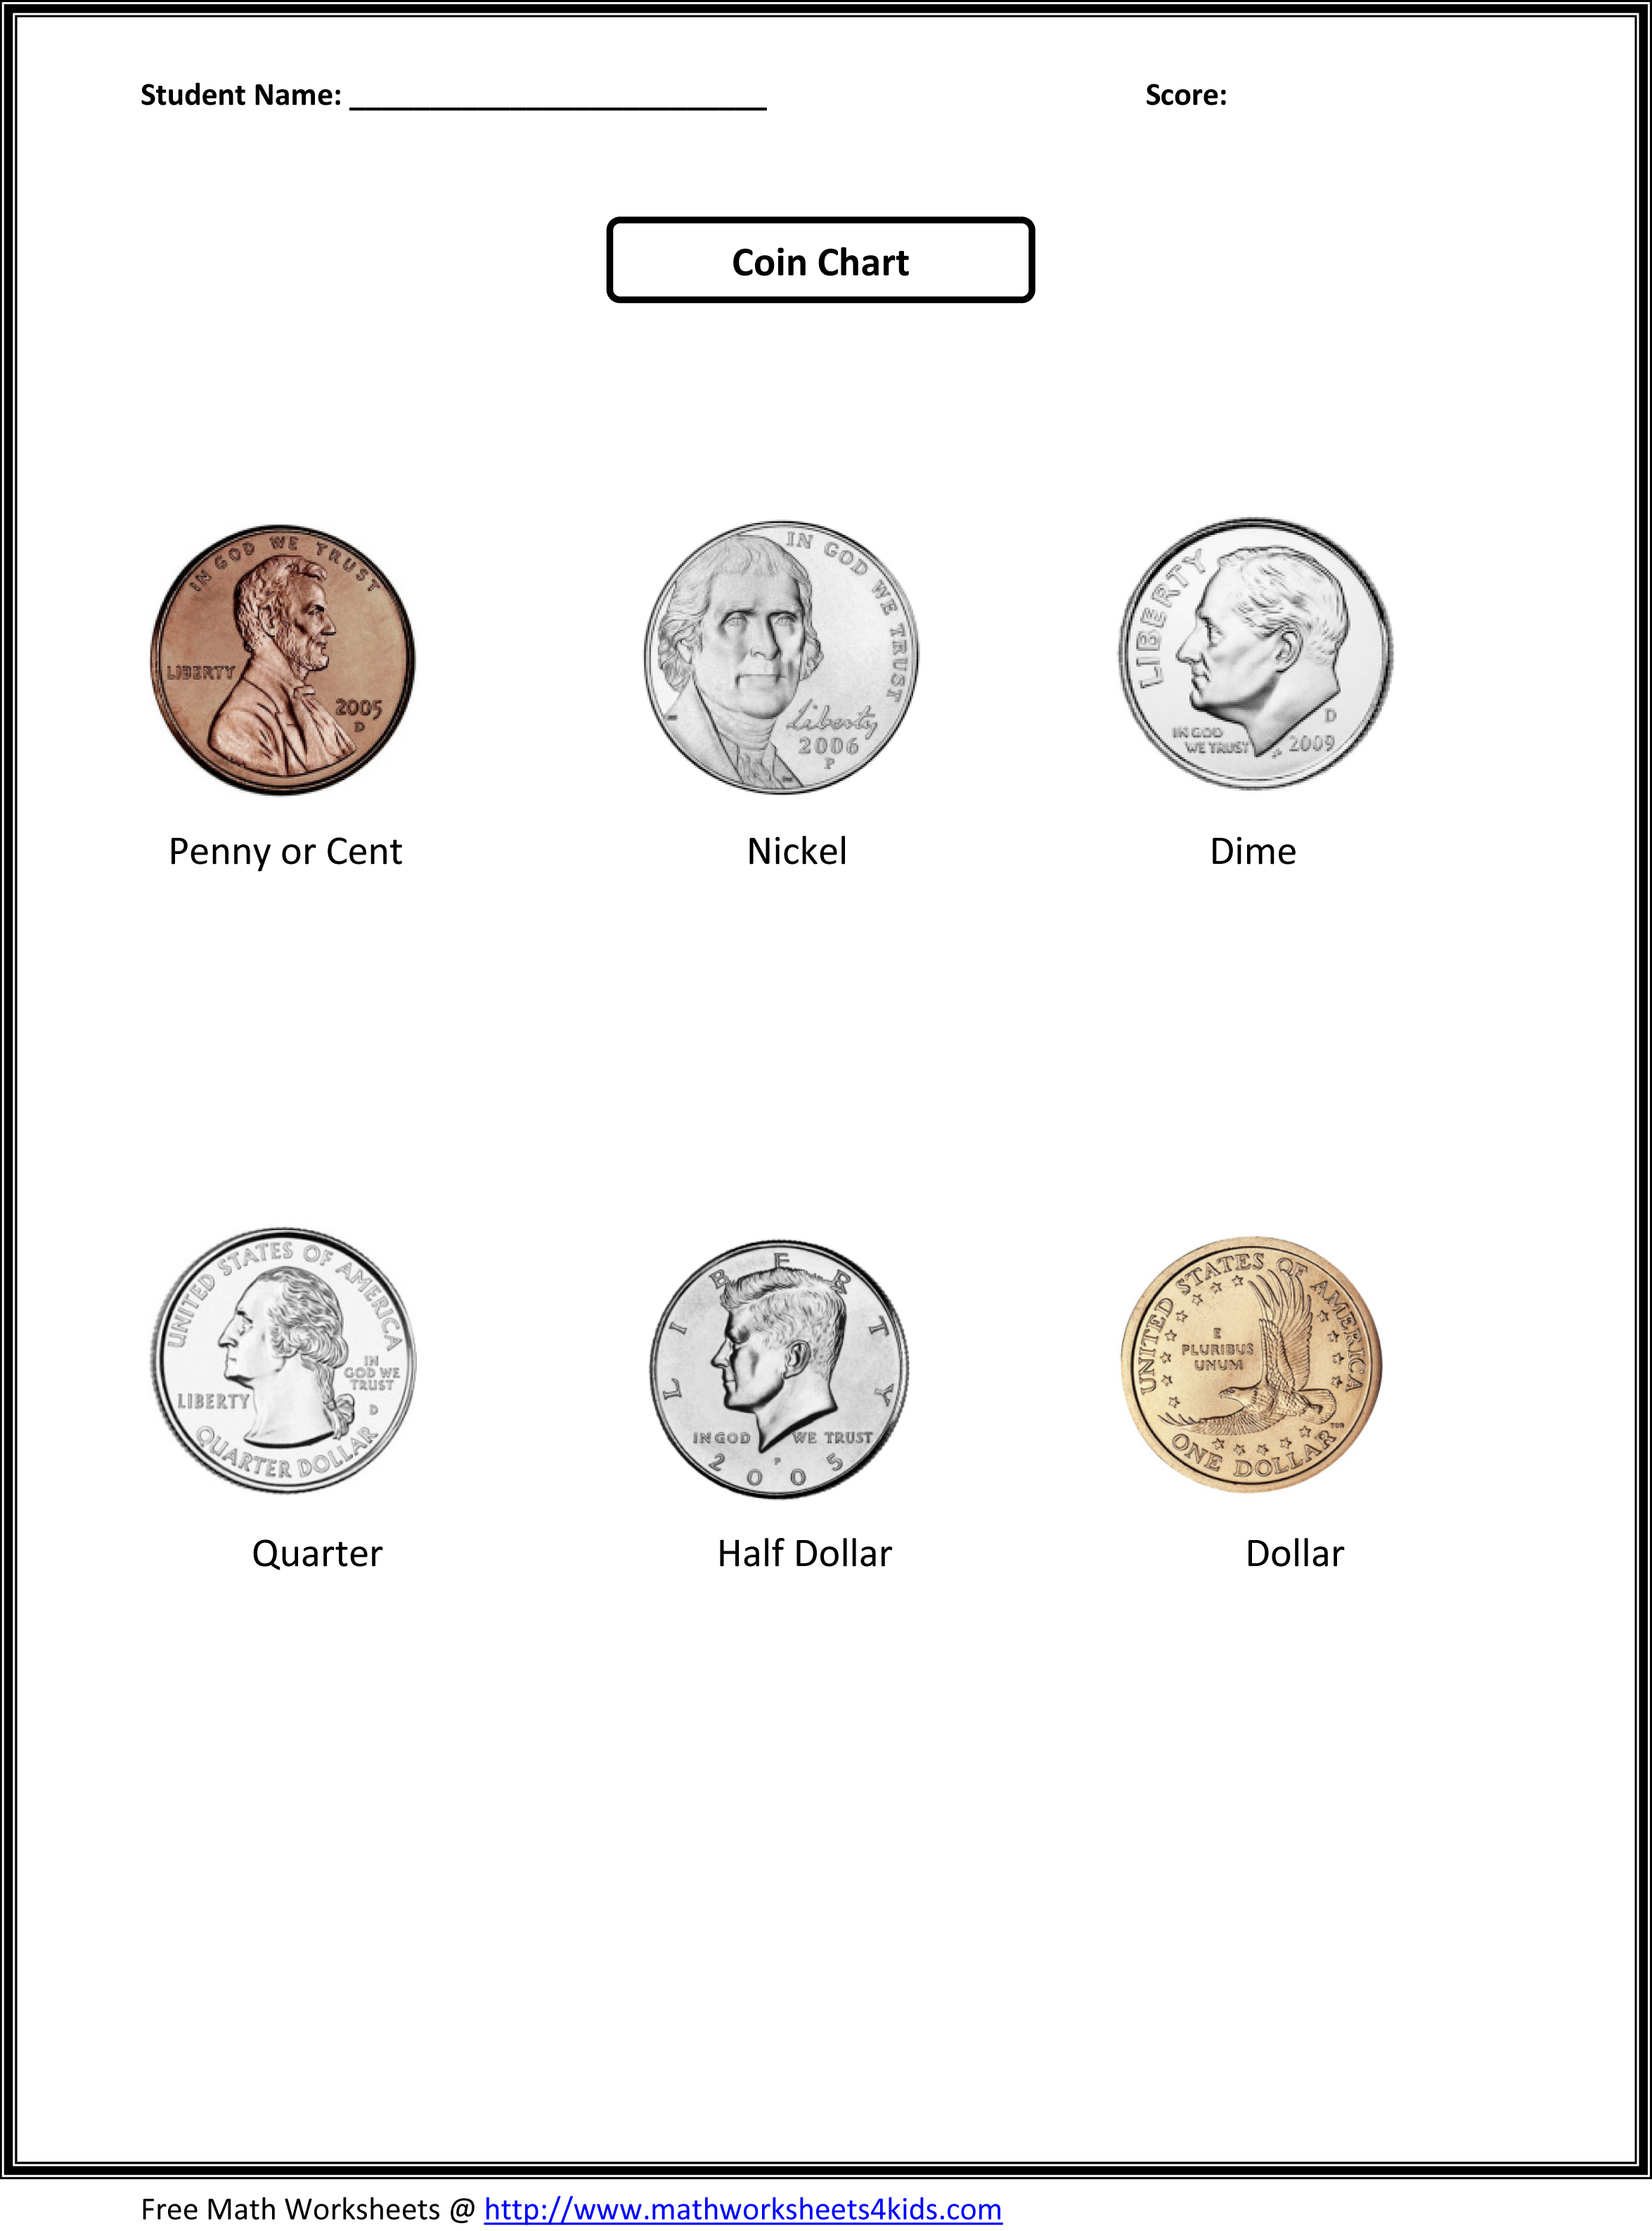 Real Coin Value Worksheet